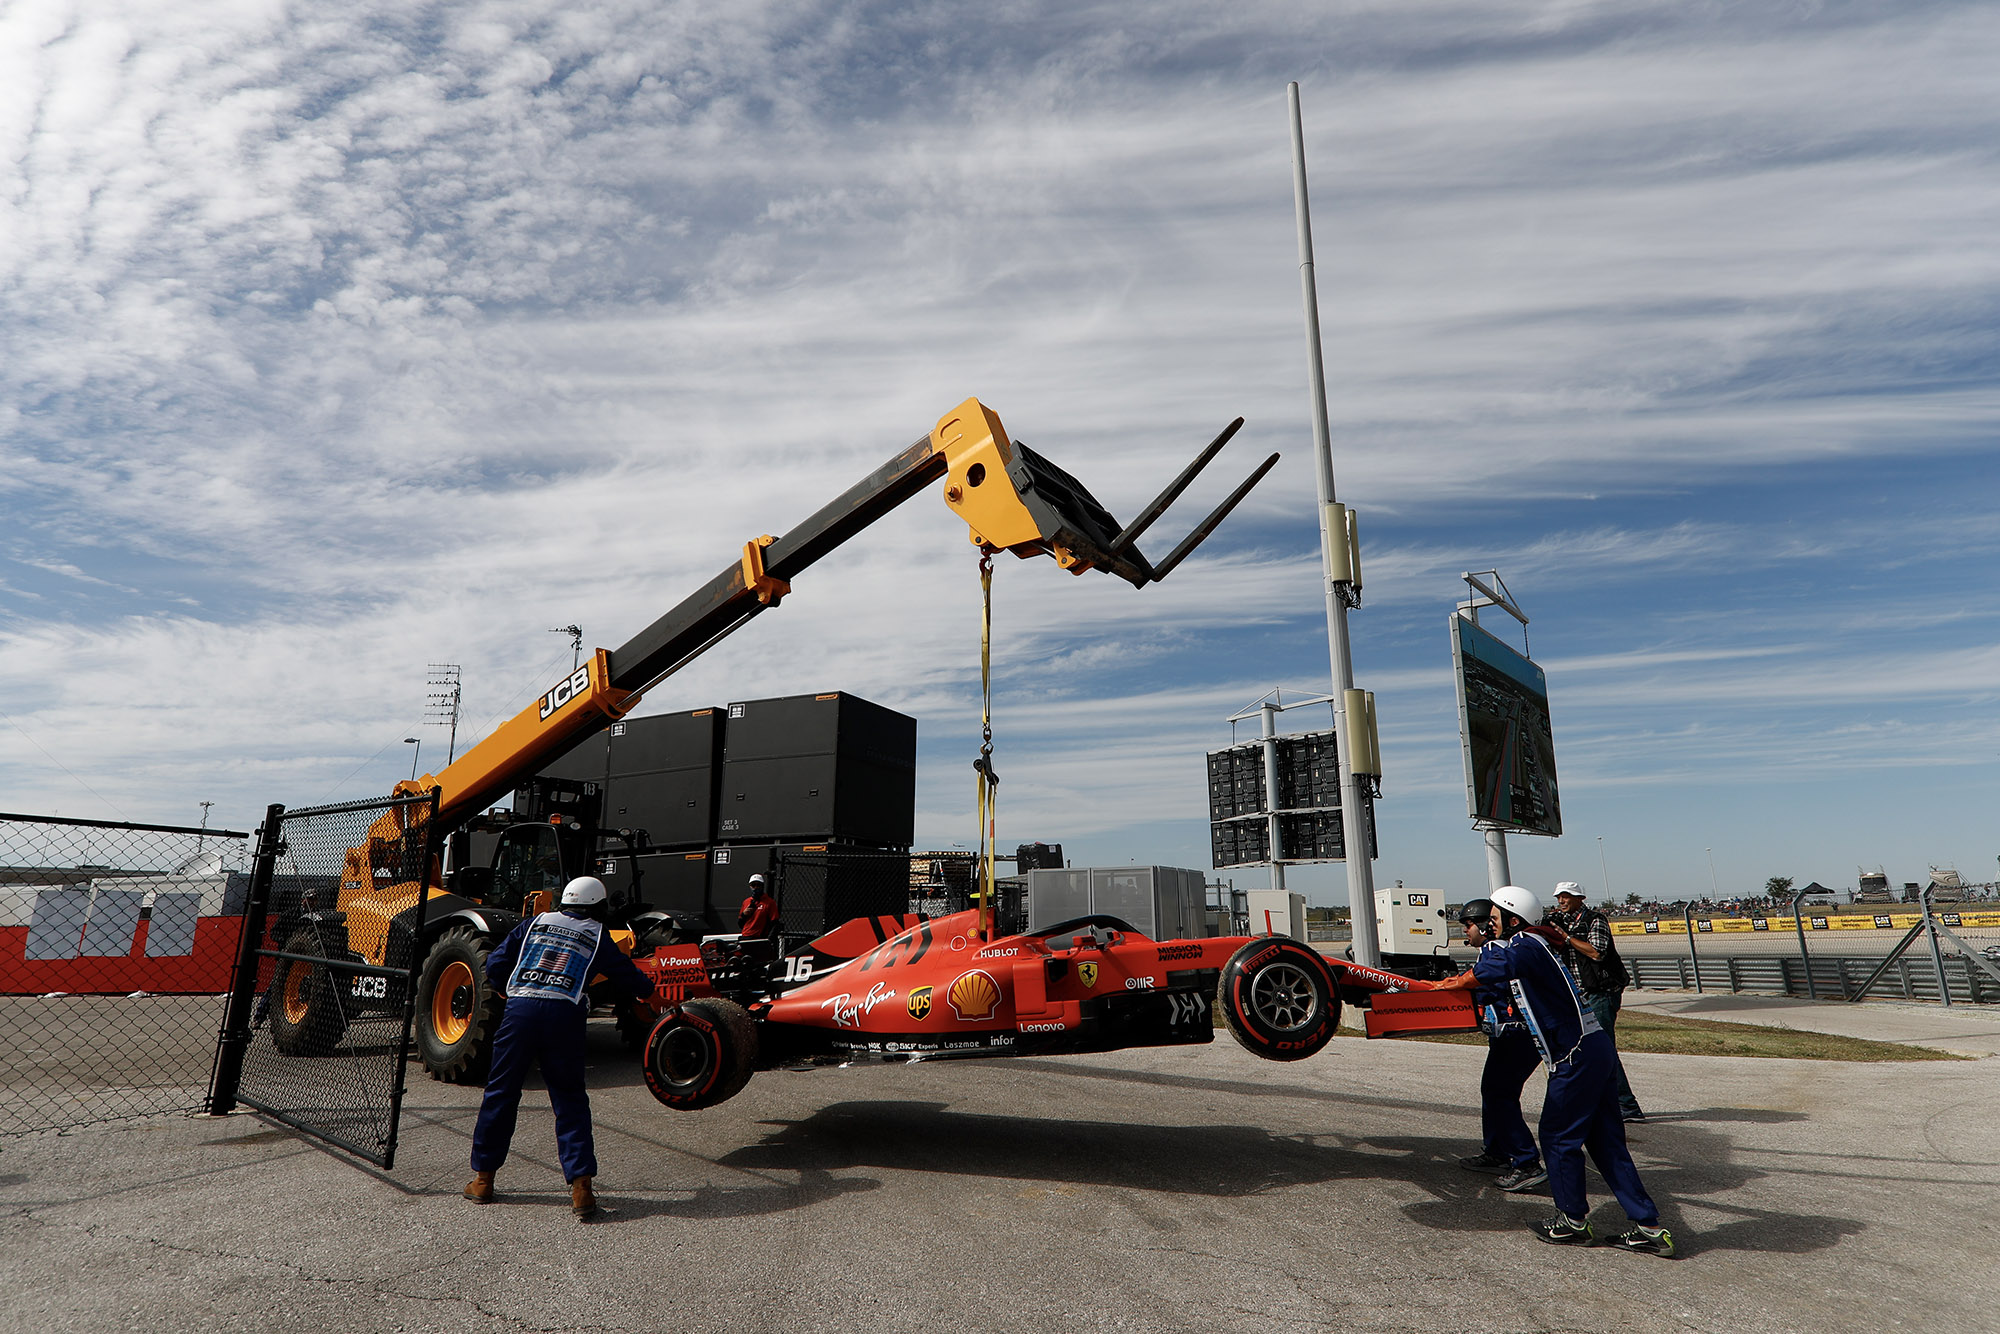 Charles Leclerc's Ferrari being lifted by a tractor in practice ahead of qualifying for the 2019 US Grand Prix